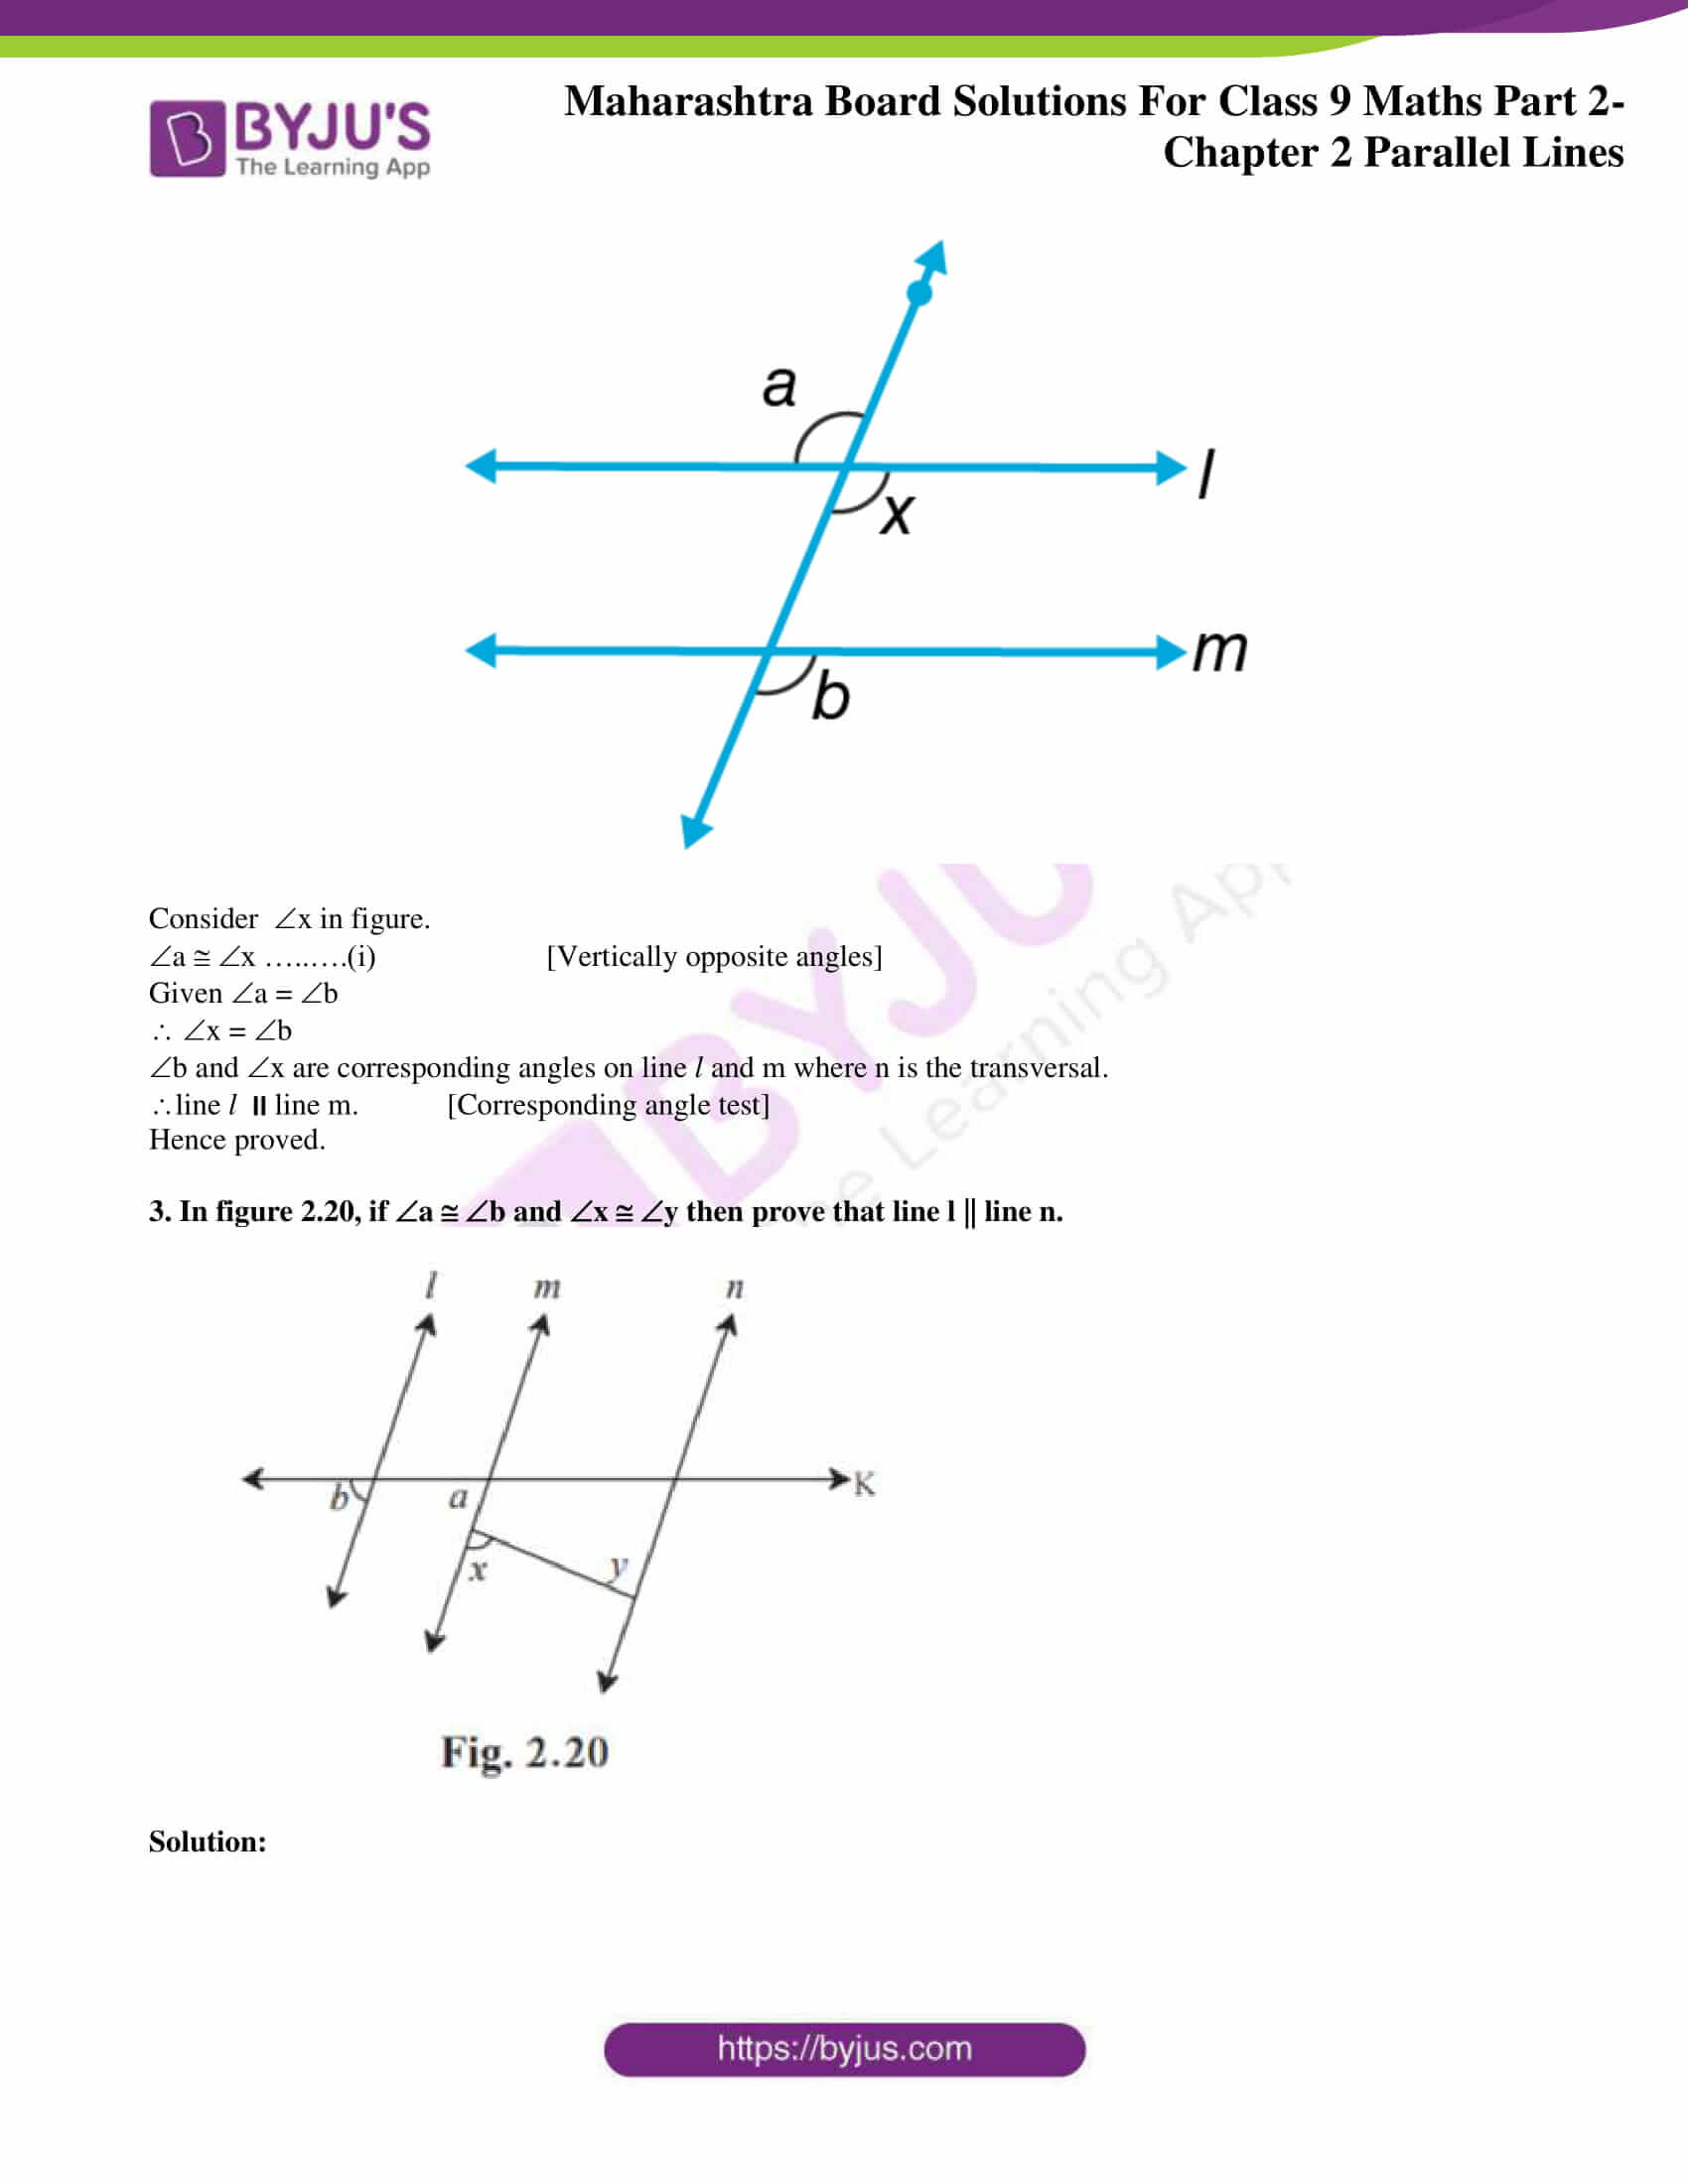 msbshse solutions for class 9 maths part 2 chapter 2 07